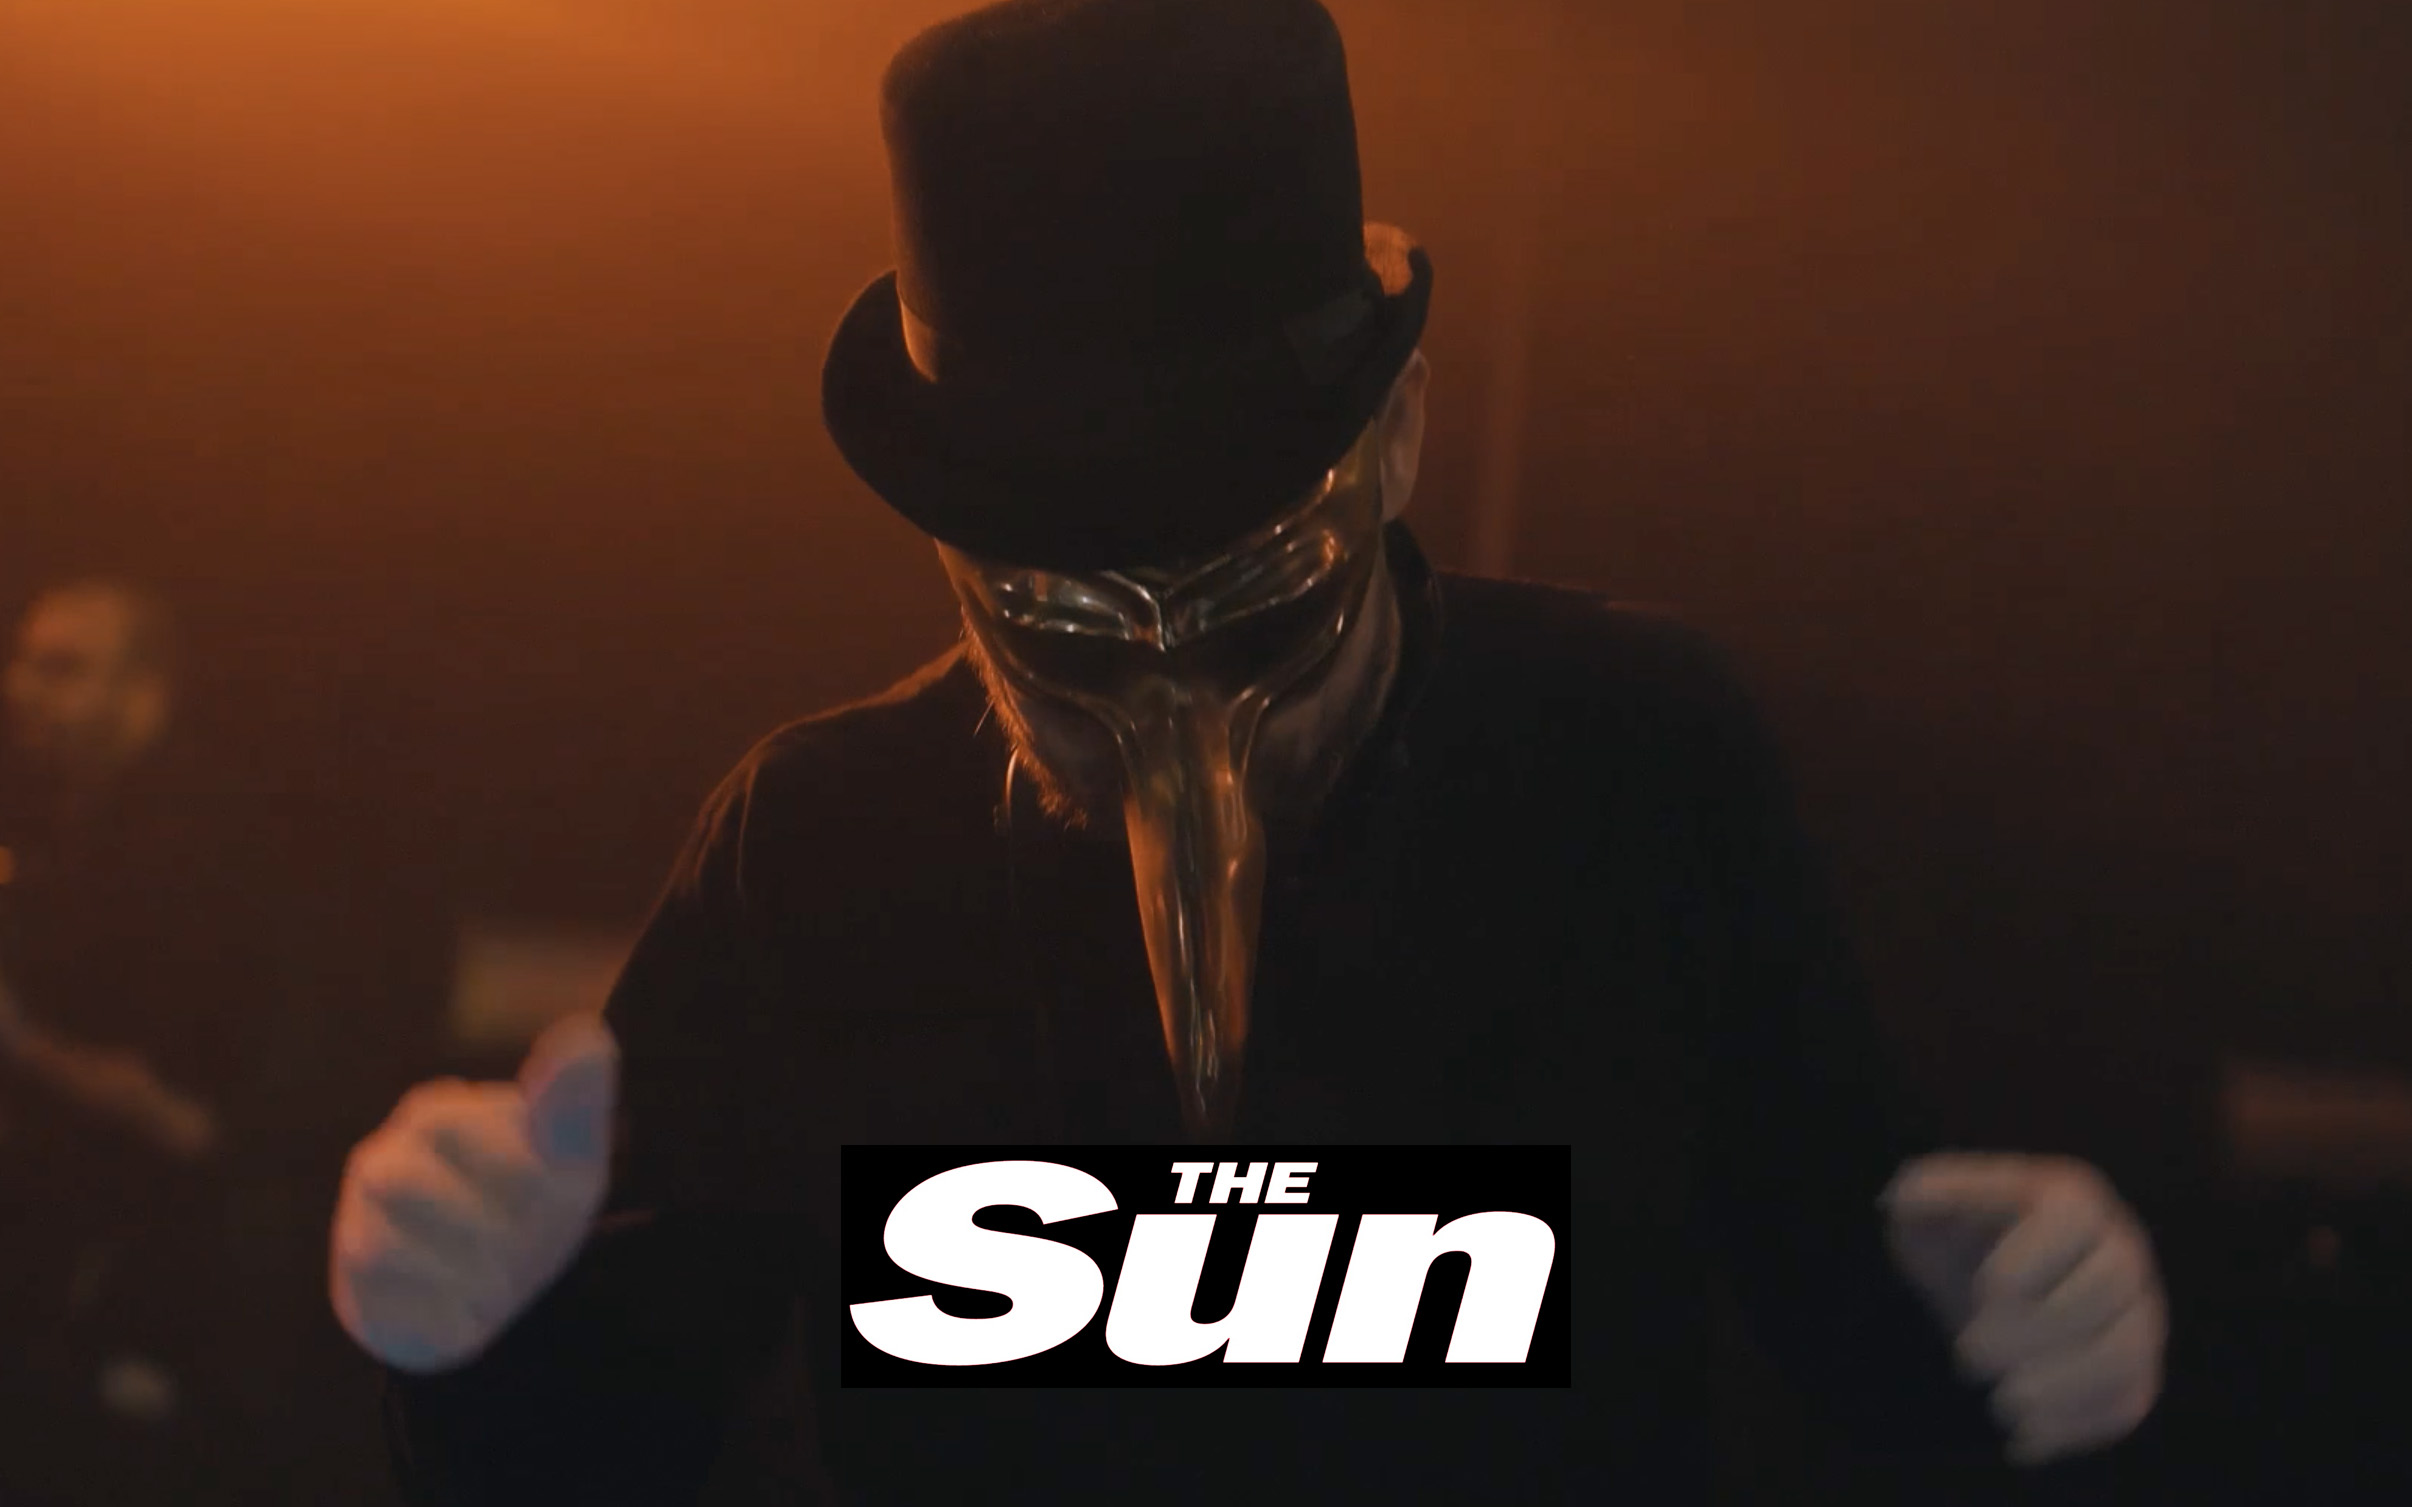 Claptone 'Fantast' - The Sun (OFFICIAL)